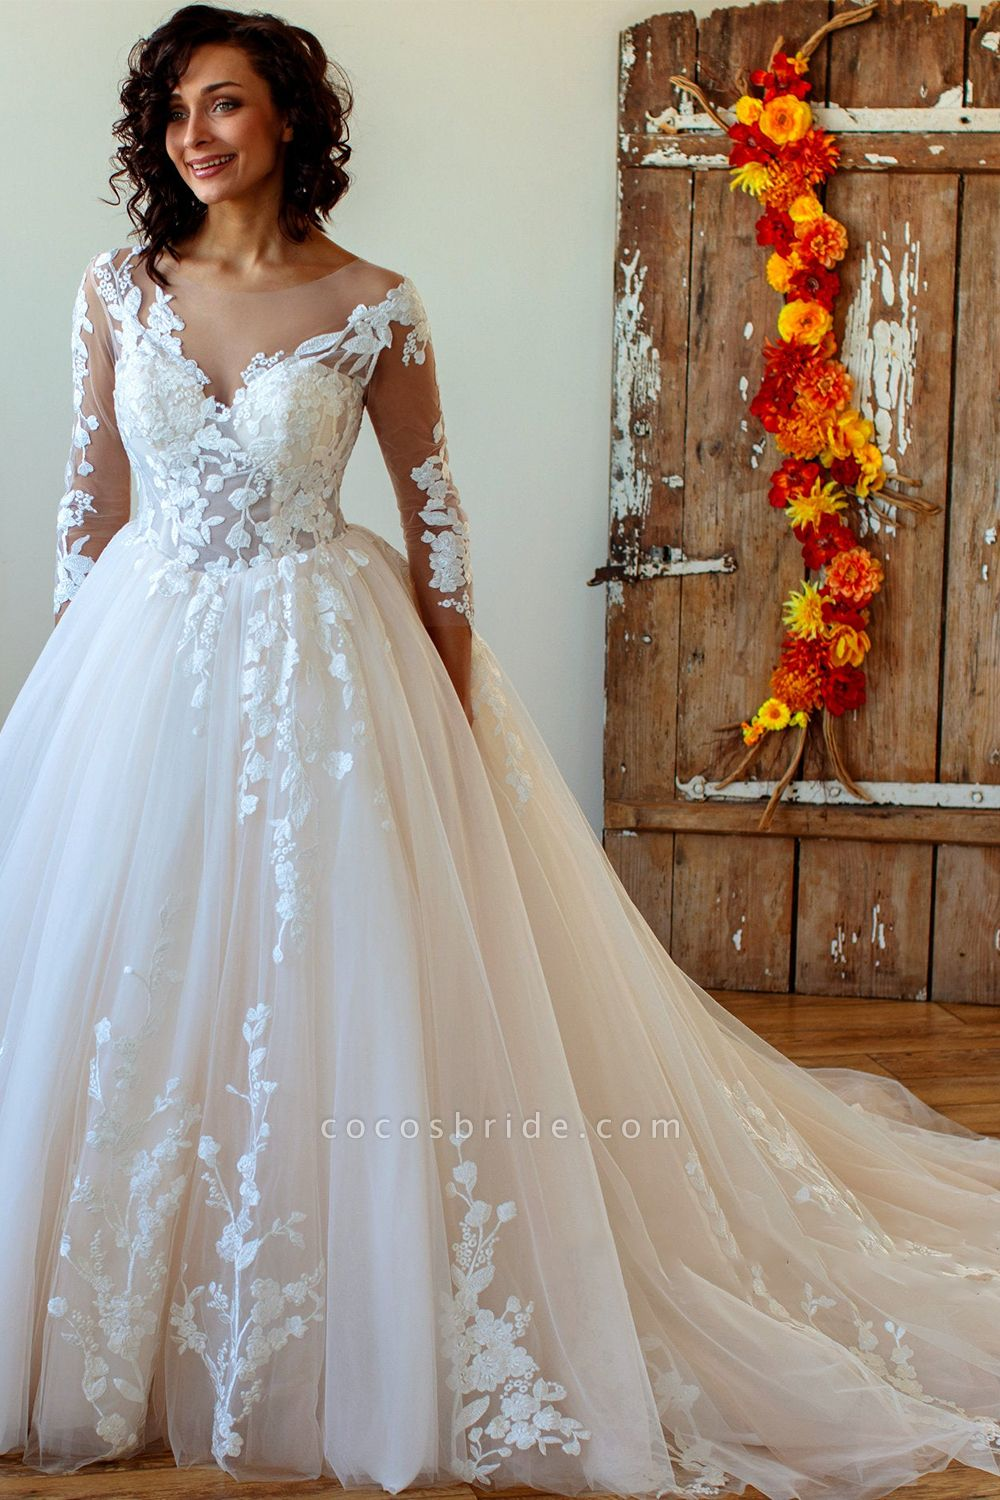 Lace-up Appliques Tulle Ball Gown Wedding Dress